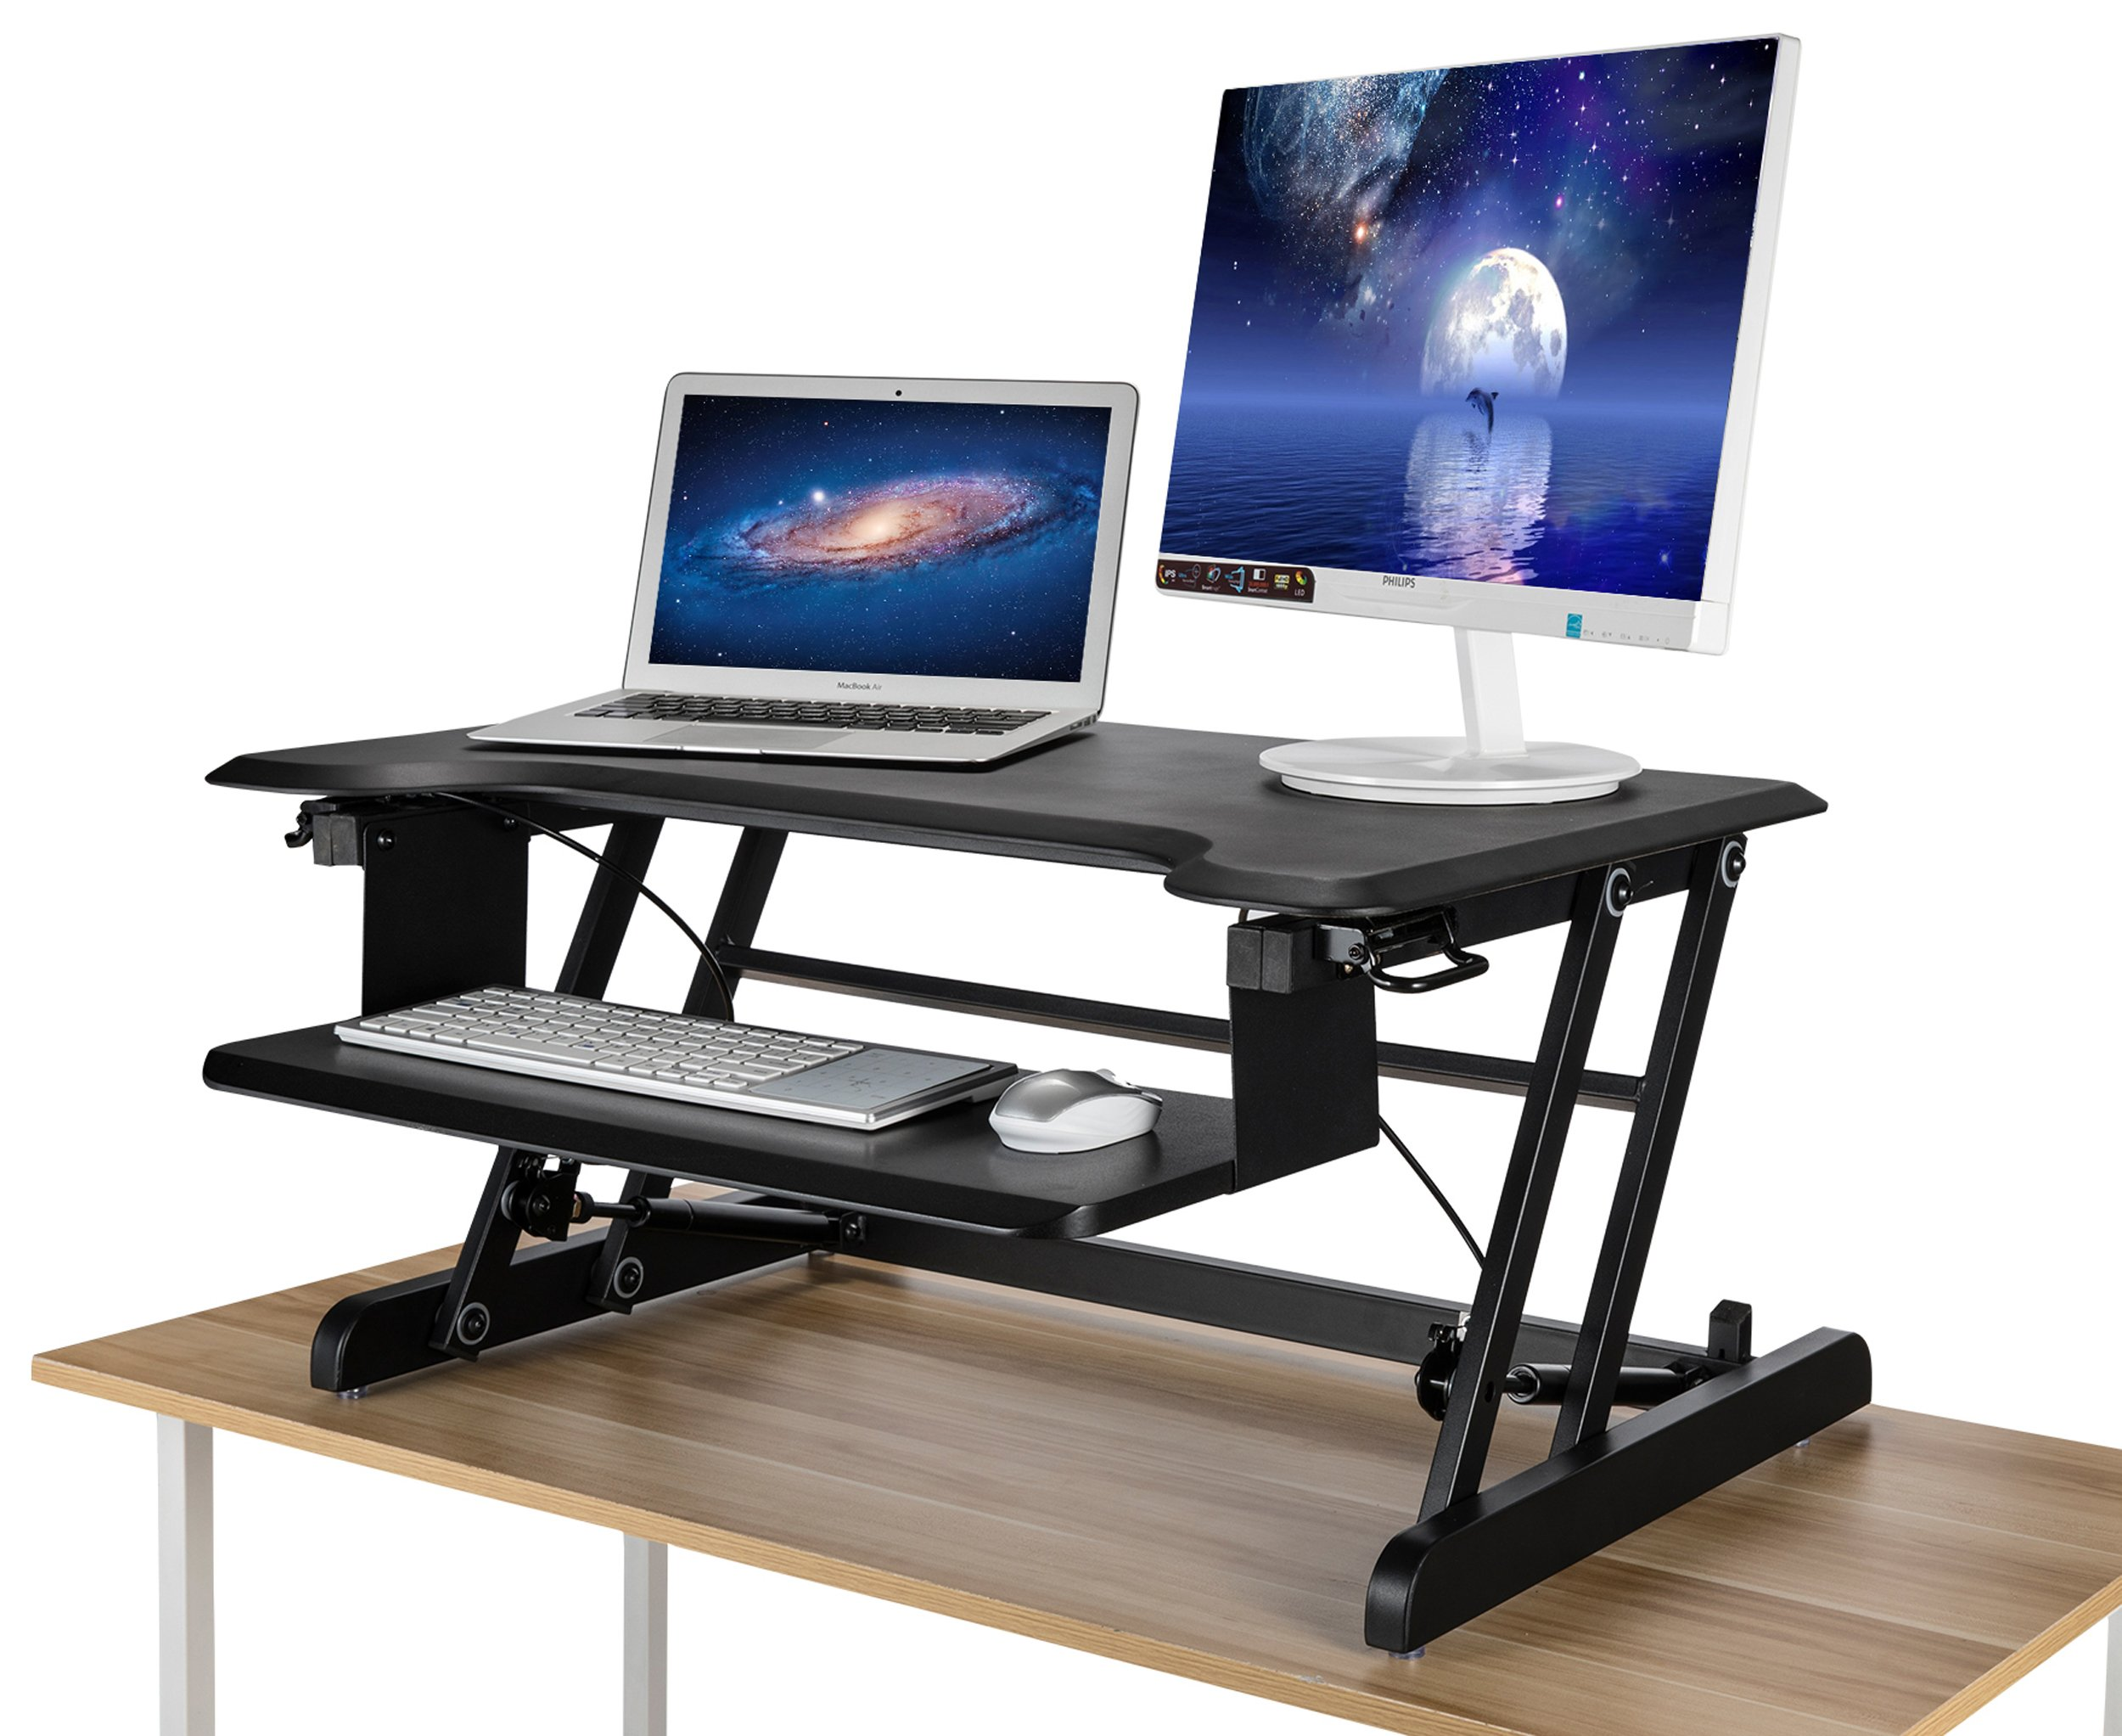 Morros Standing Desk Riser Adjustable Height Desk Converter Elevating Desktop Workstation with Keyboard Tray -Black